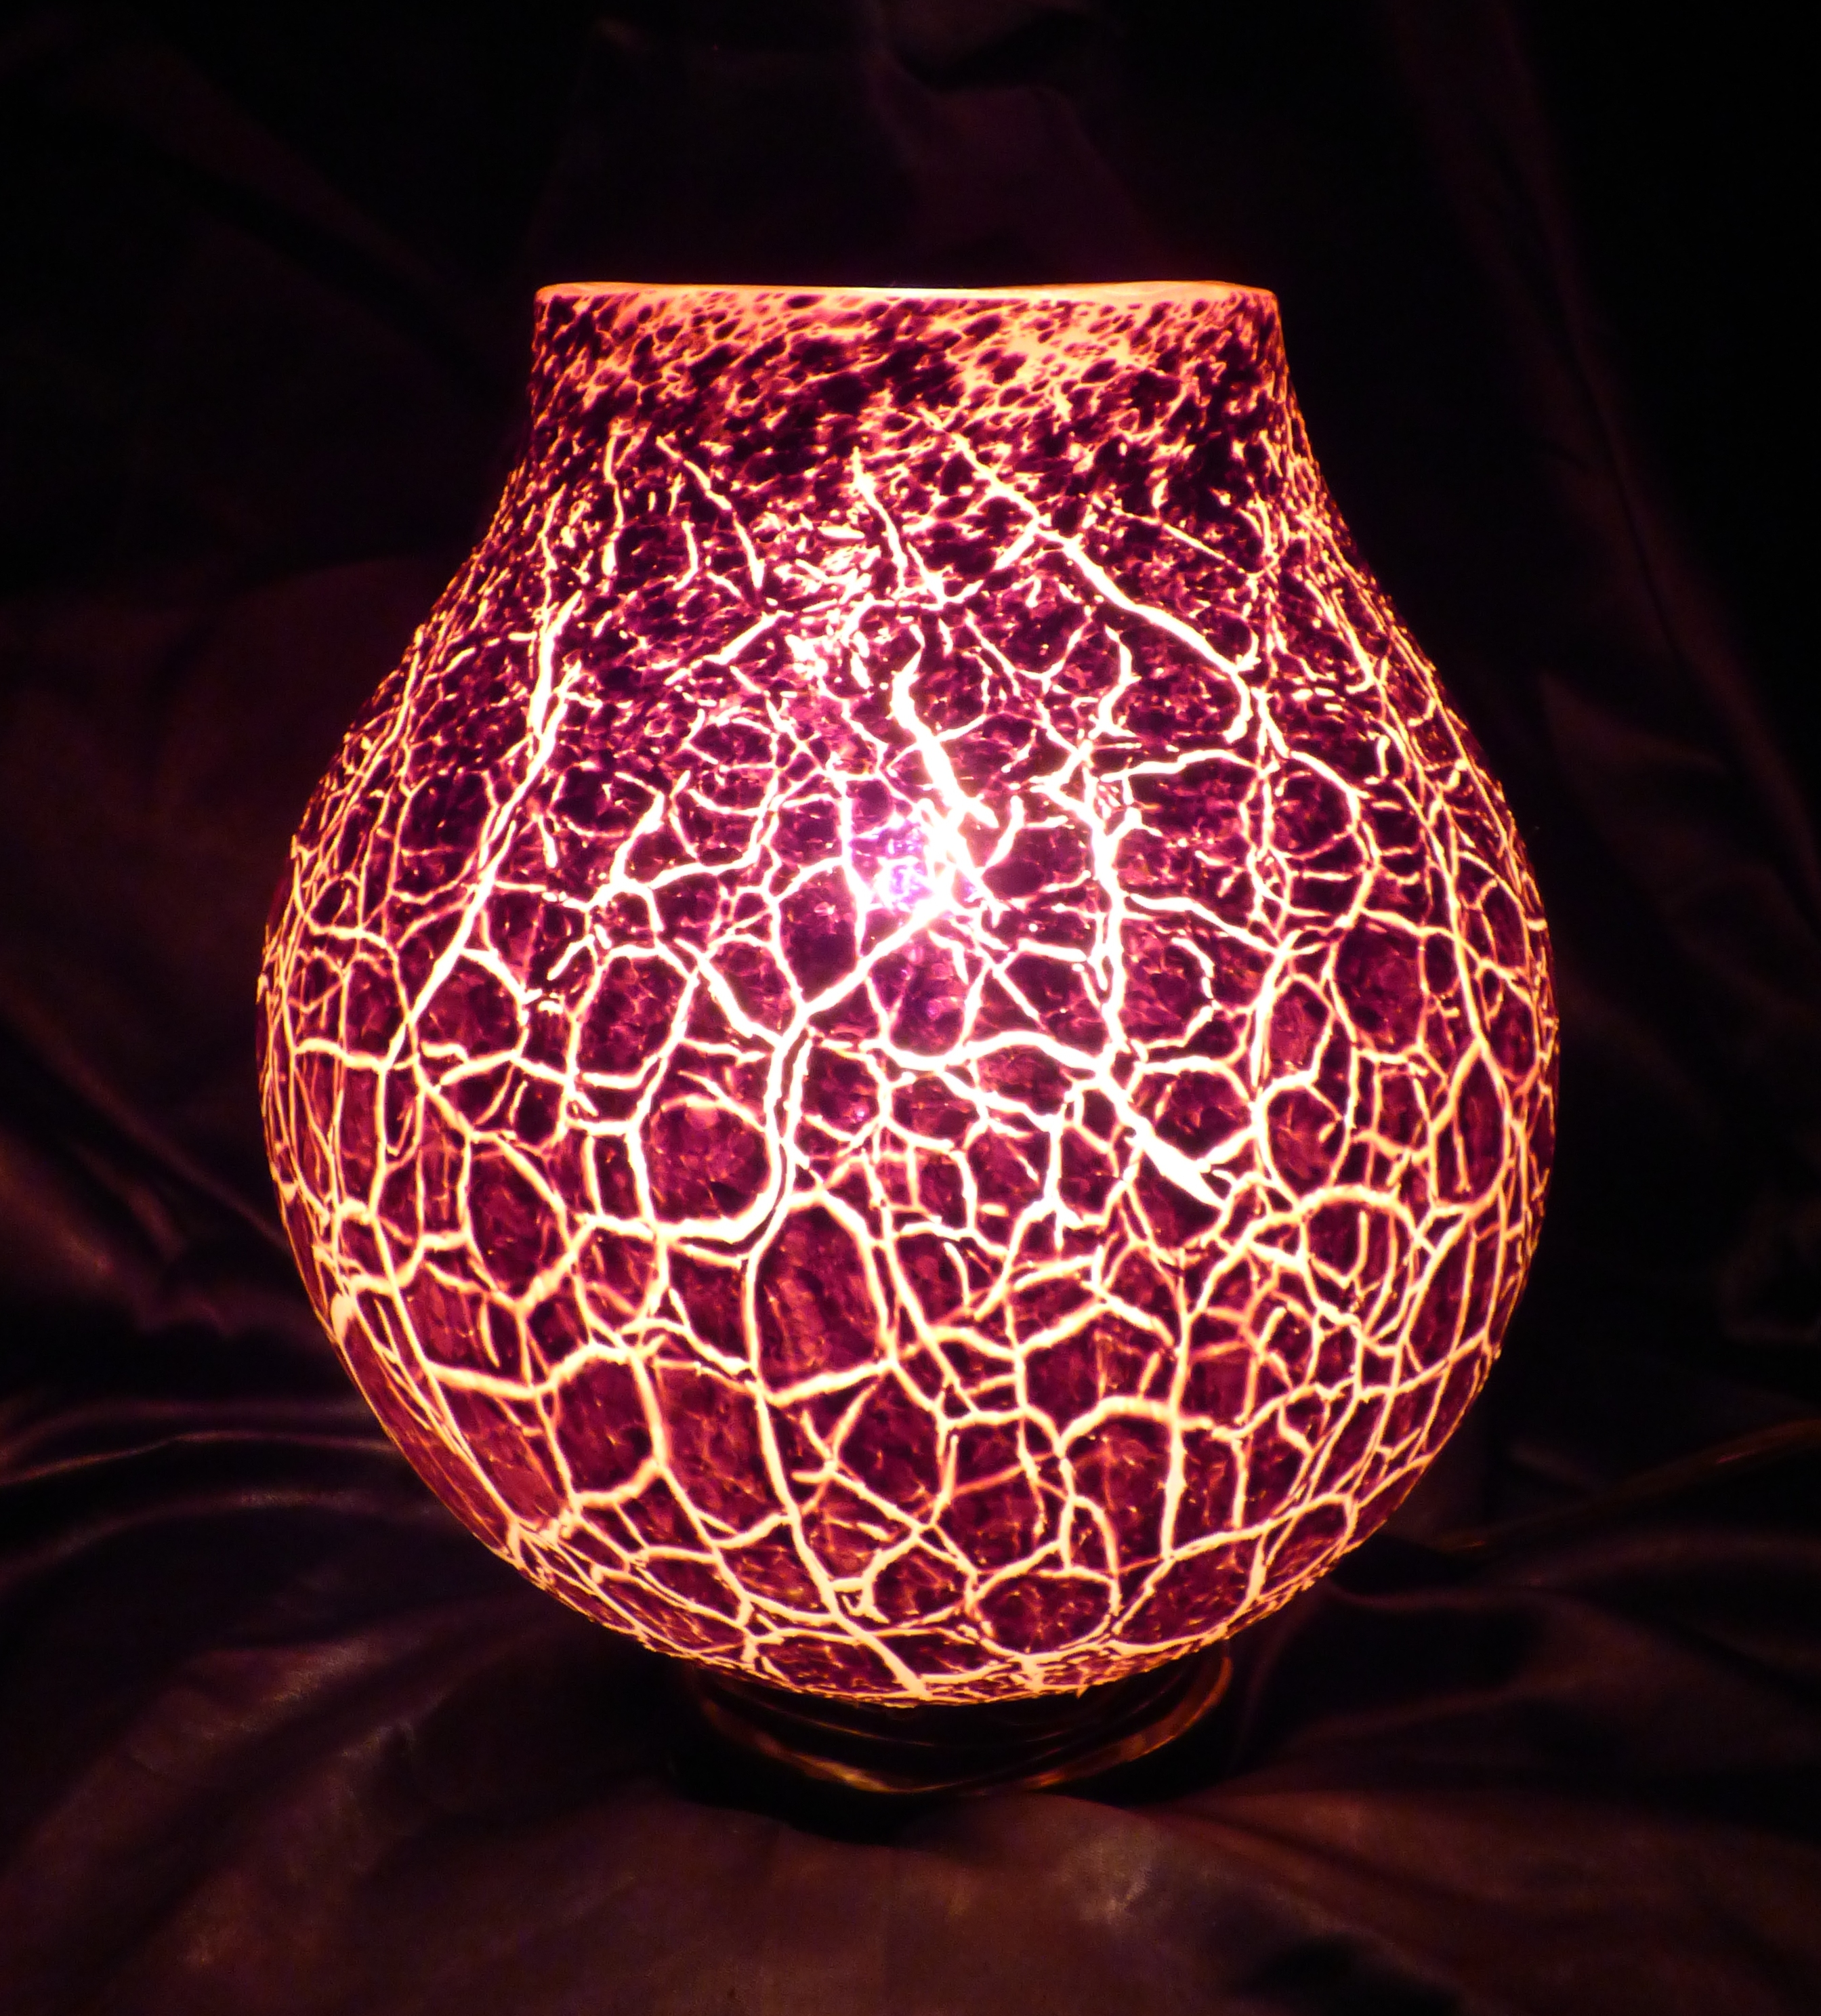 Glass Crackle Lamp Tony Patti Crackle Glass Volcano Lamp Tyler Park Center For The